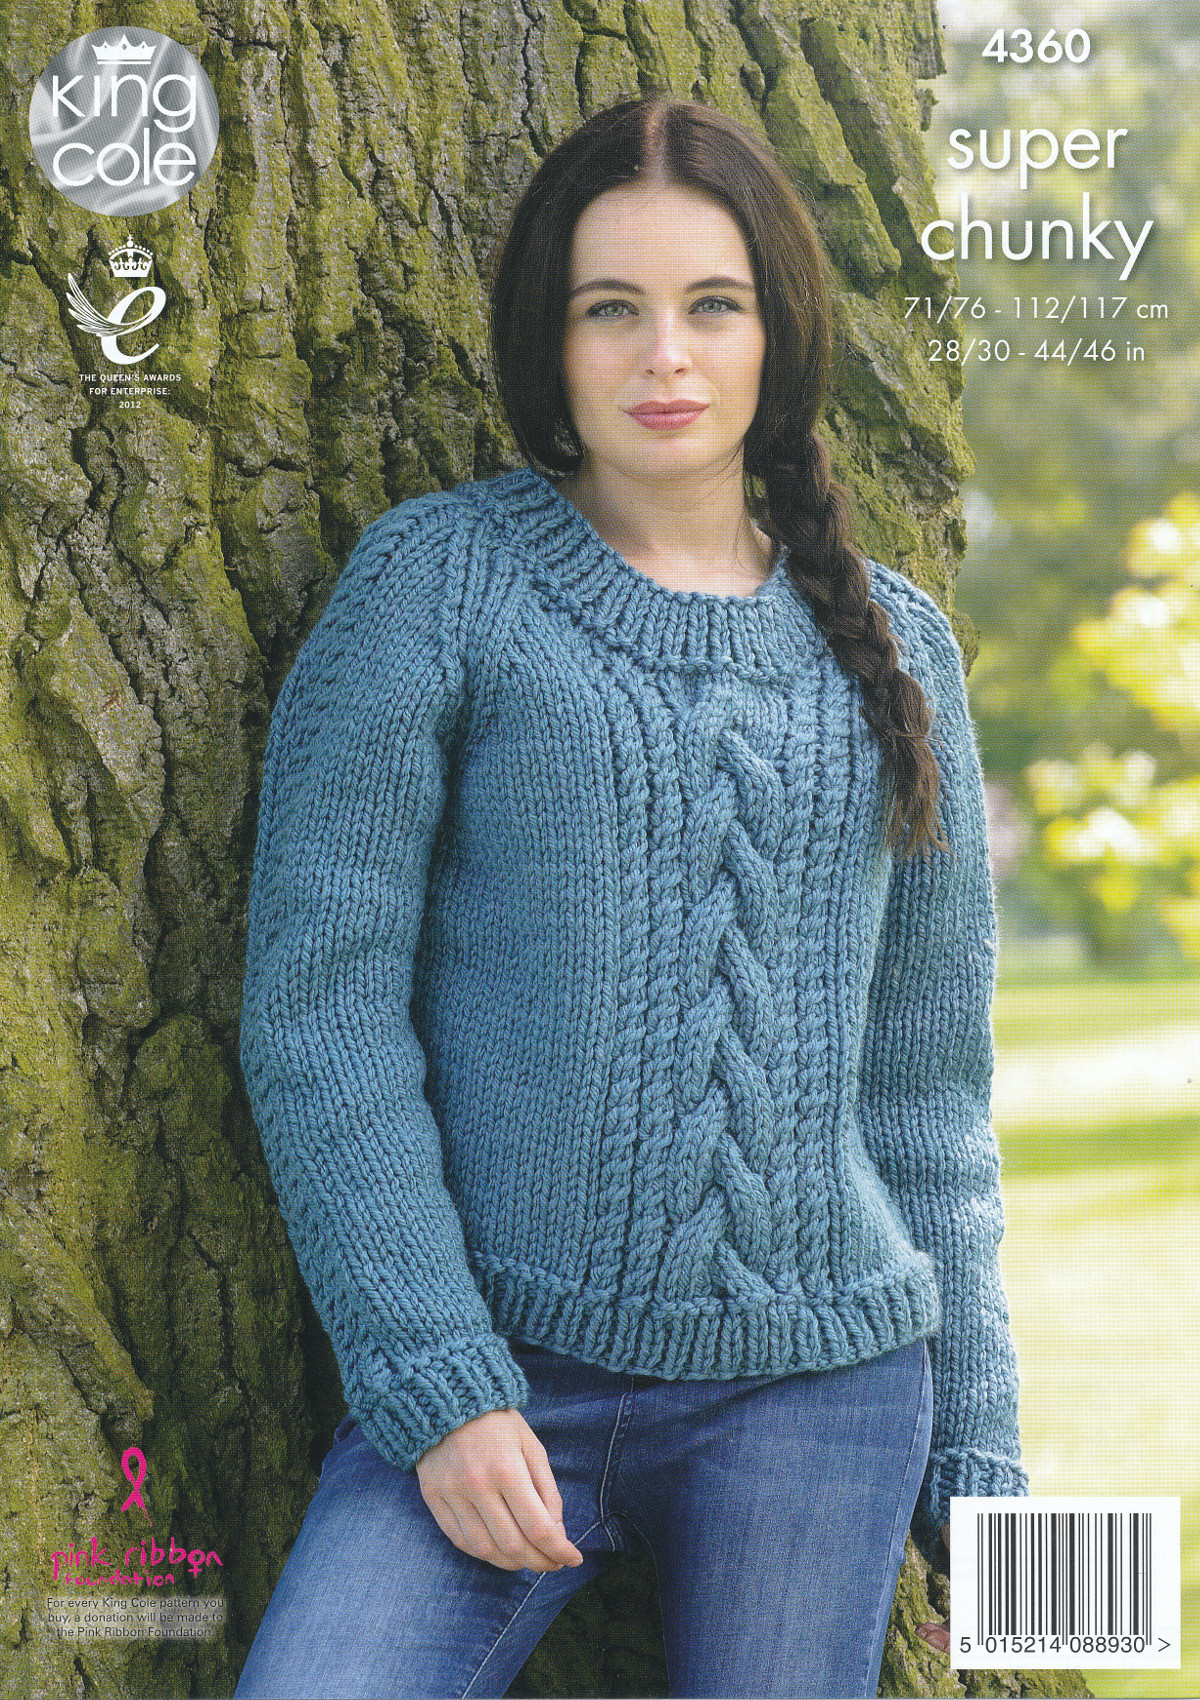 Awesome La S Super Chunky Knitting Pattern King Cole Cable Knit Ladies Cable Knit Sweater Of Charming 49 Photos Ladies Cable Knit Sweater